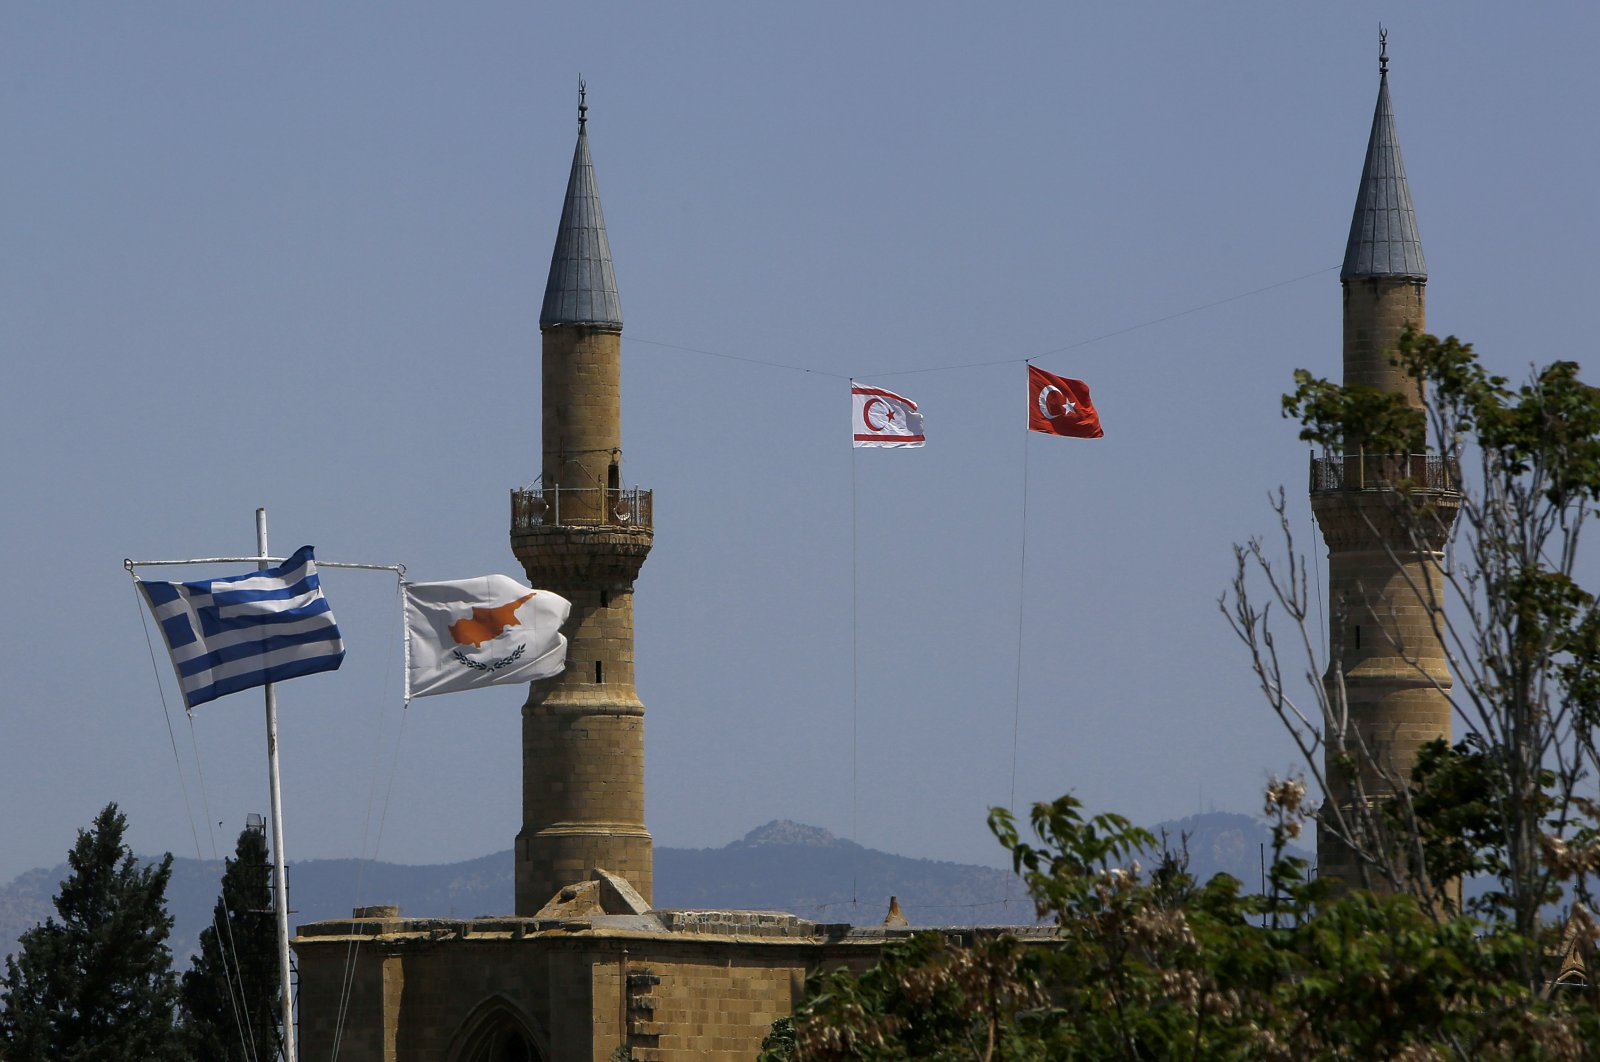 Turkish (R) and Turkish Cyprus (L) flags fly on a minaret of the Selimiye Mosque, while a Greek, (L-front), and Greek Cypriot flag (R-front) fly in Lefkoşa, on the border between Turkish and Greek Cyprus, April 26, 2021. (AP File Photo)